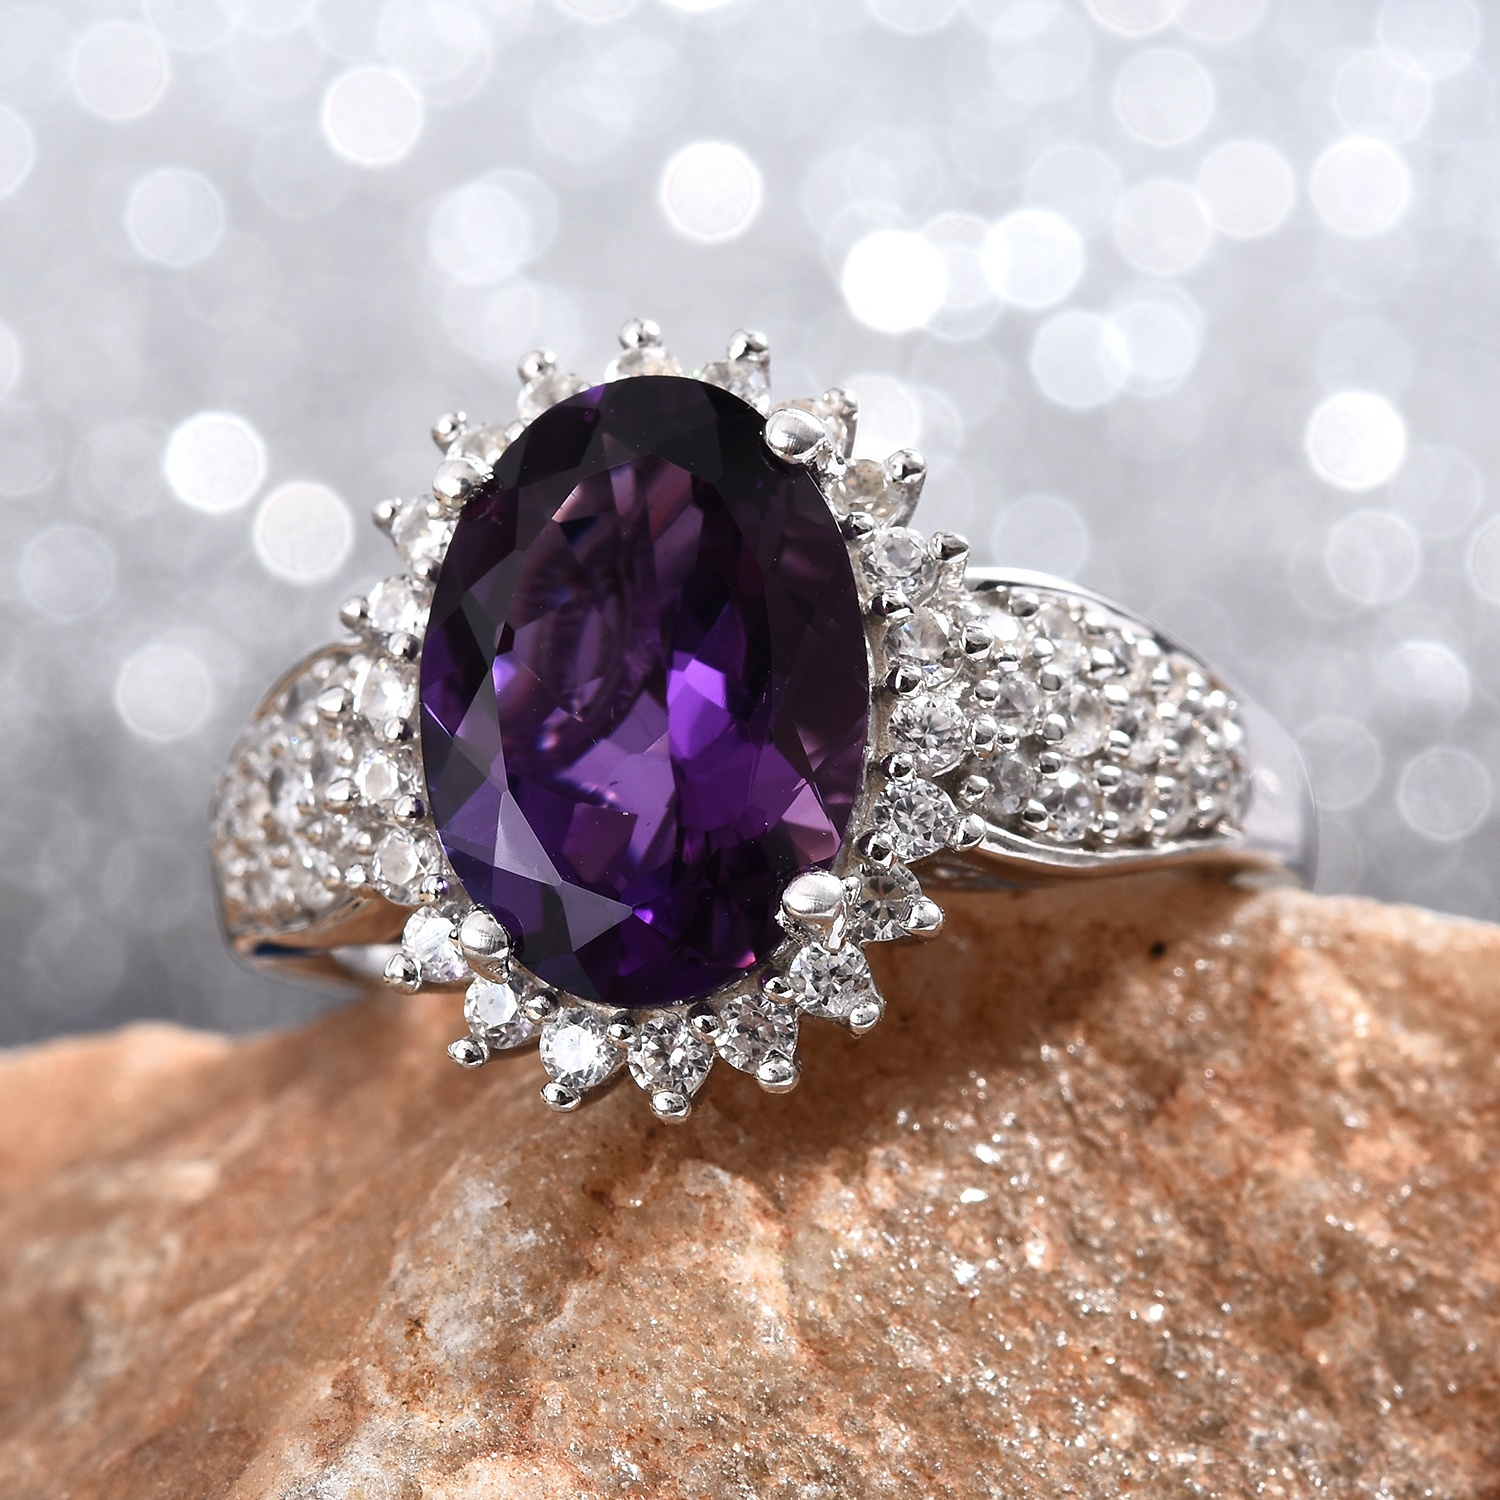 EPIC DAY Mashamba Amethyst, Cambodian Zircon Ring in Platinum Over Sterling Silver (Size 11.0) 6.75 ctw